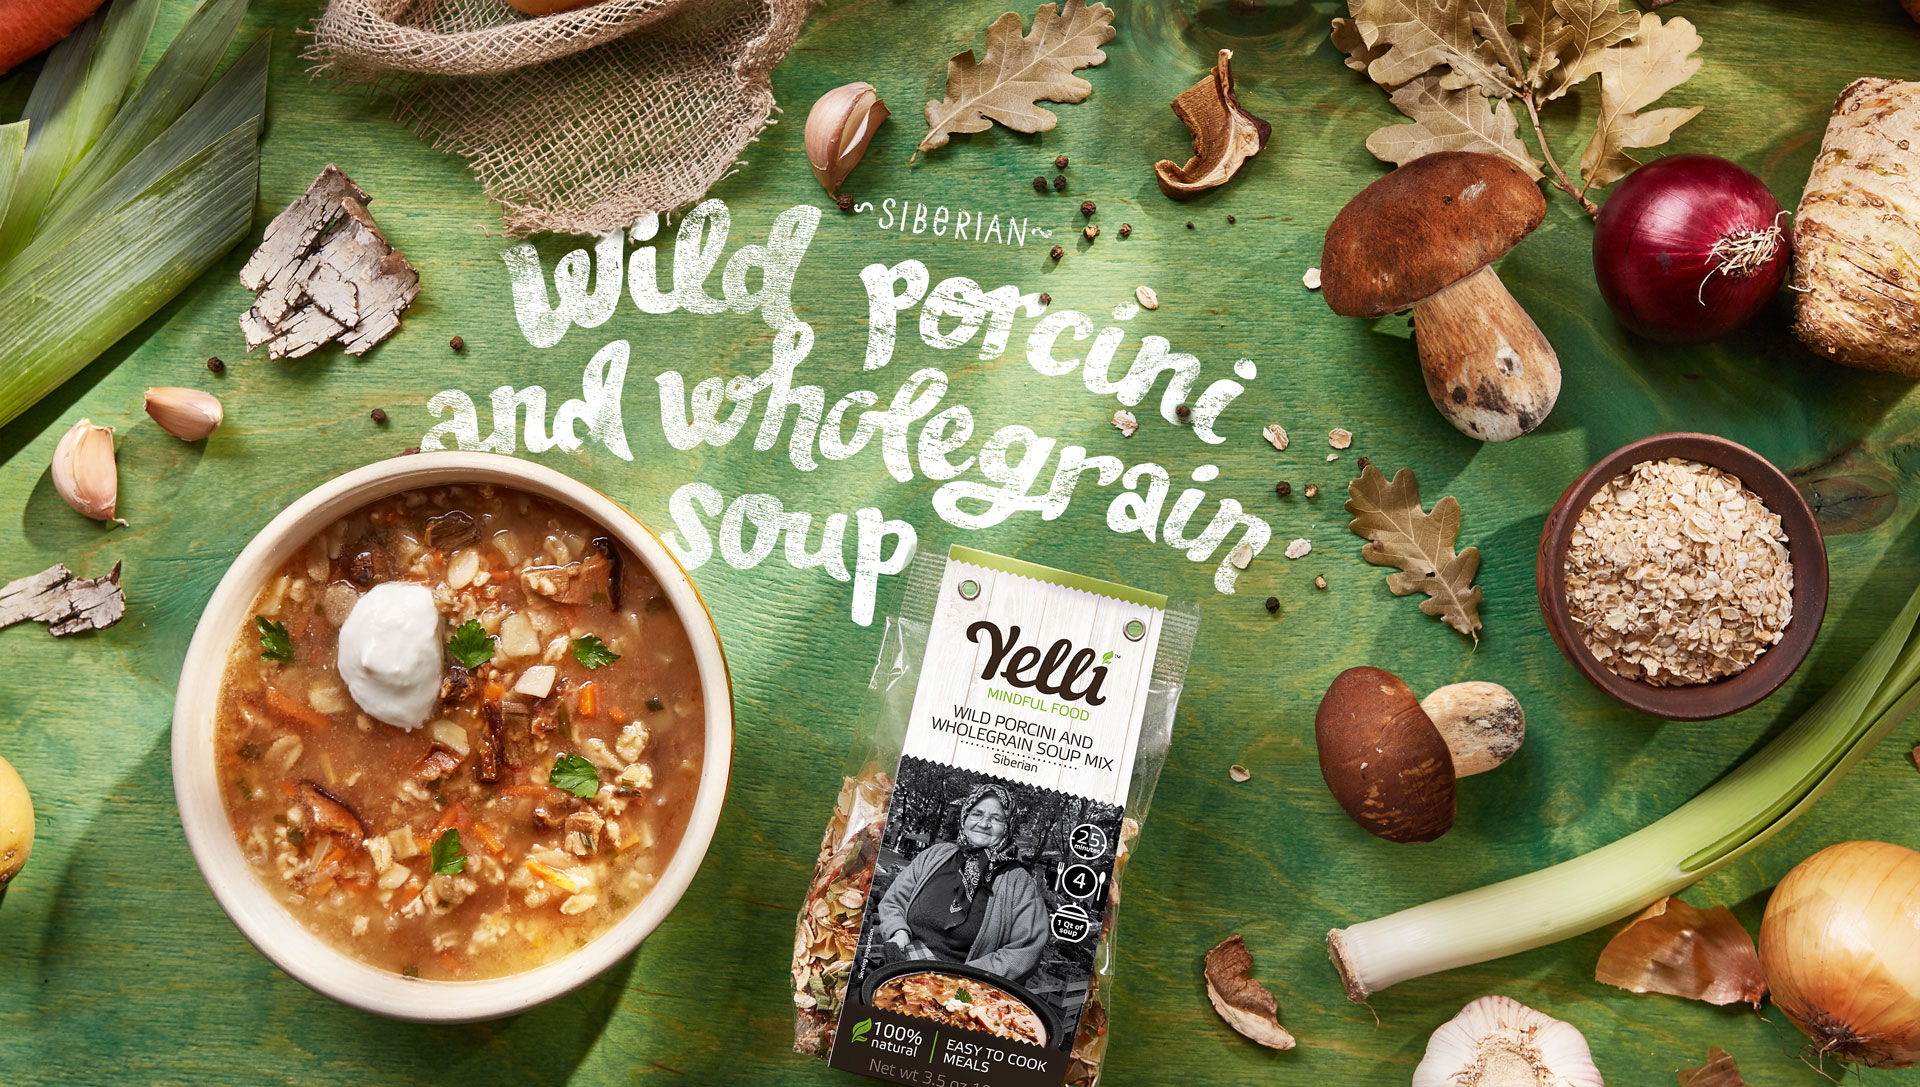 WILD PORCINI AND WHOLE GRAIN SOUP MIX